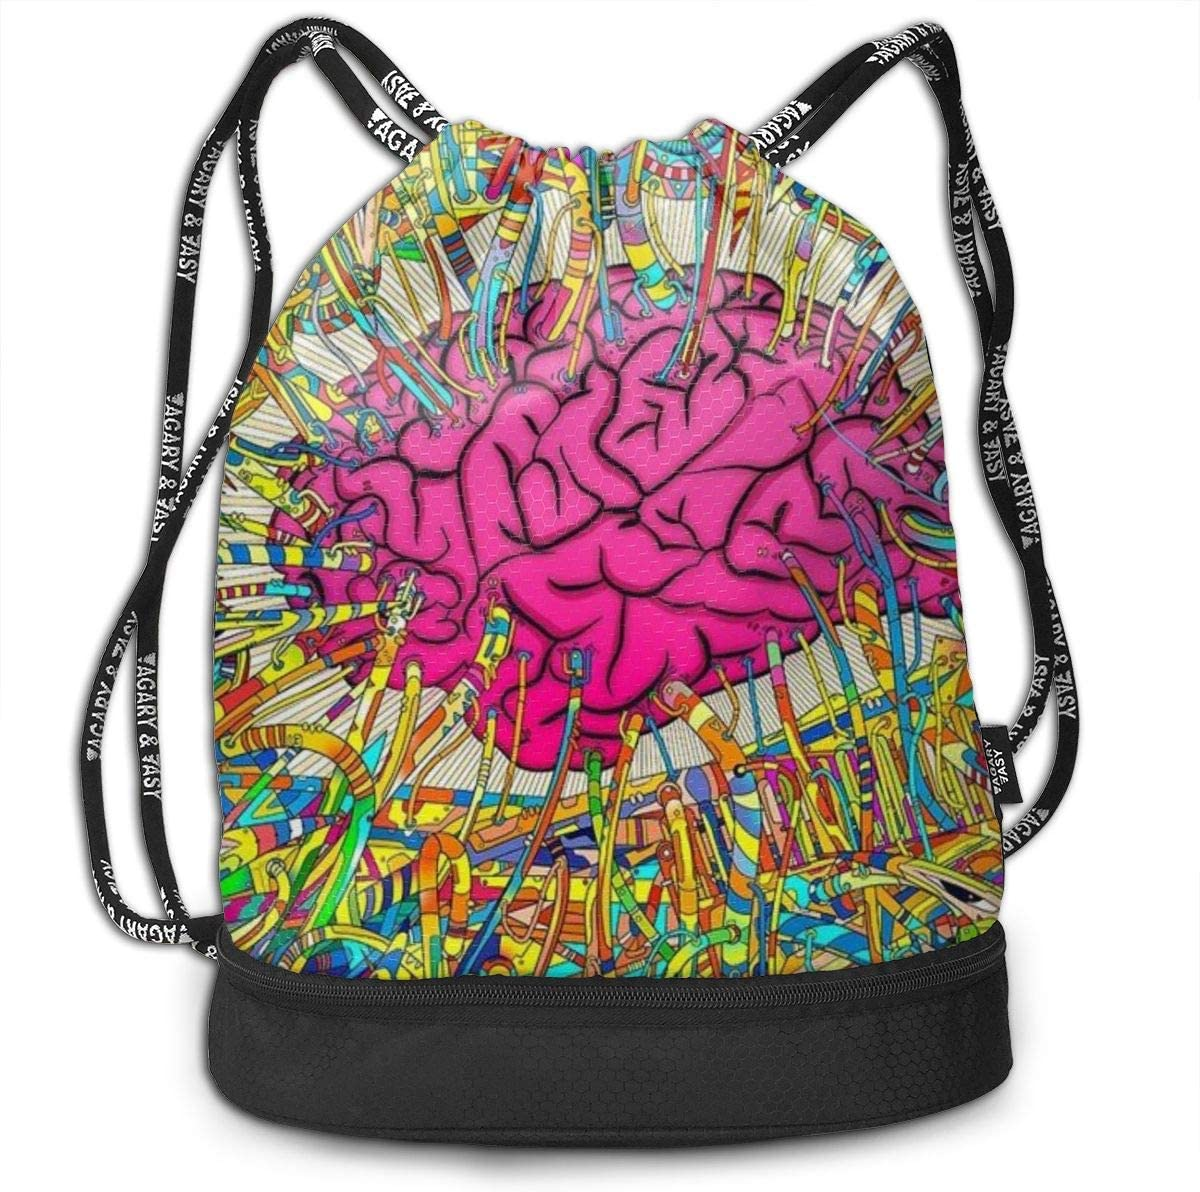 GymSack Drawstring Bag Sackpack Colorful Brain World Sport Cinch Pack Simple Bundle Pocke Backpack For Men Women